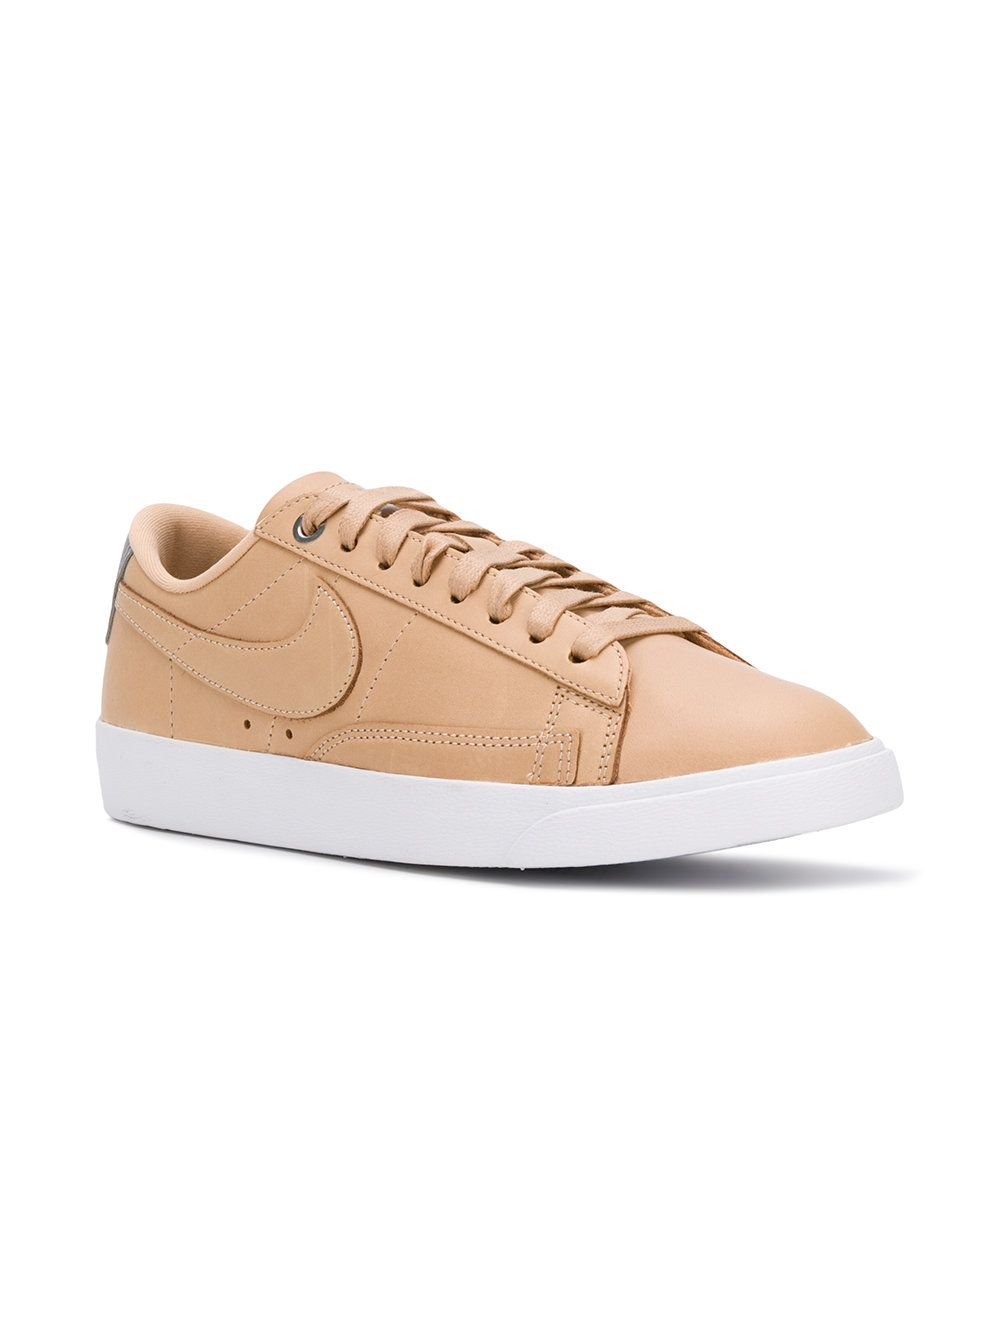 Shop best trainers: Nike trainers